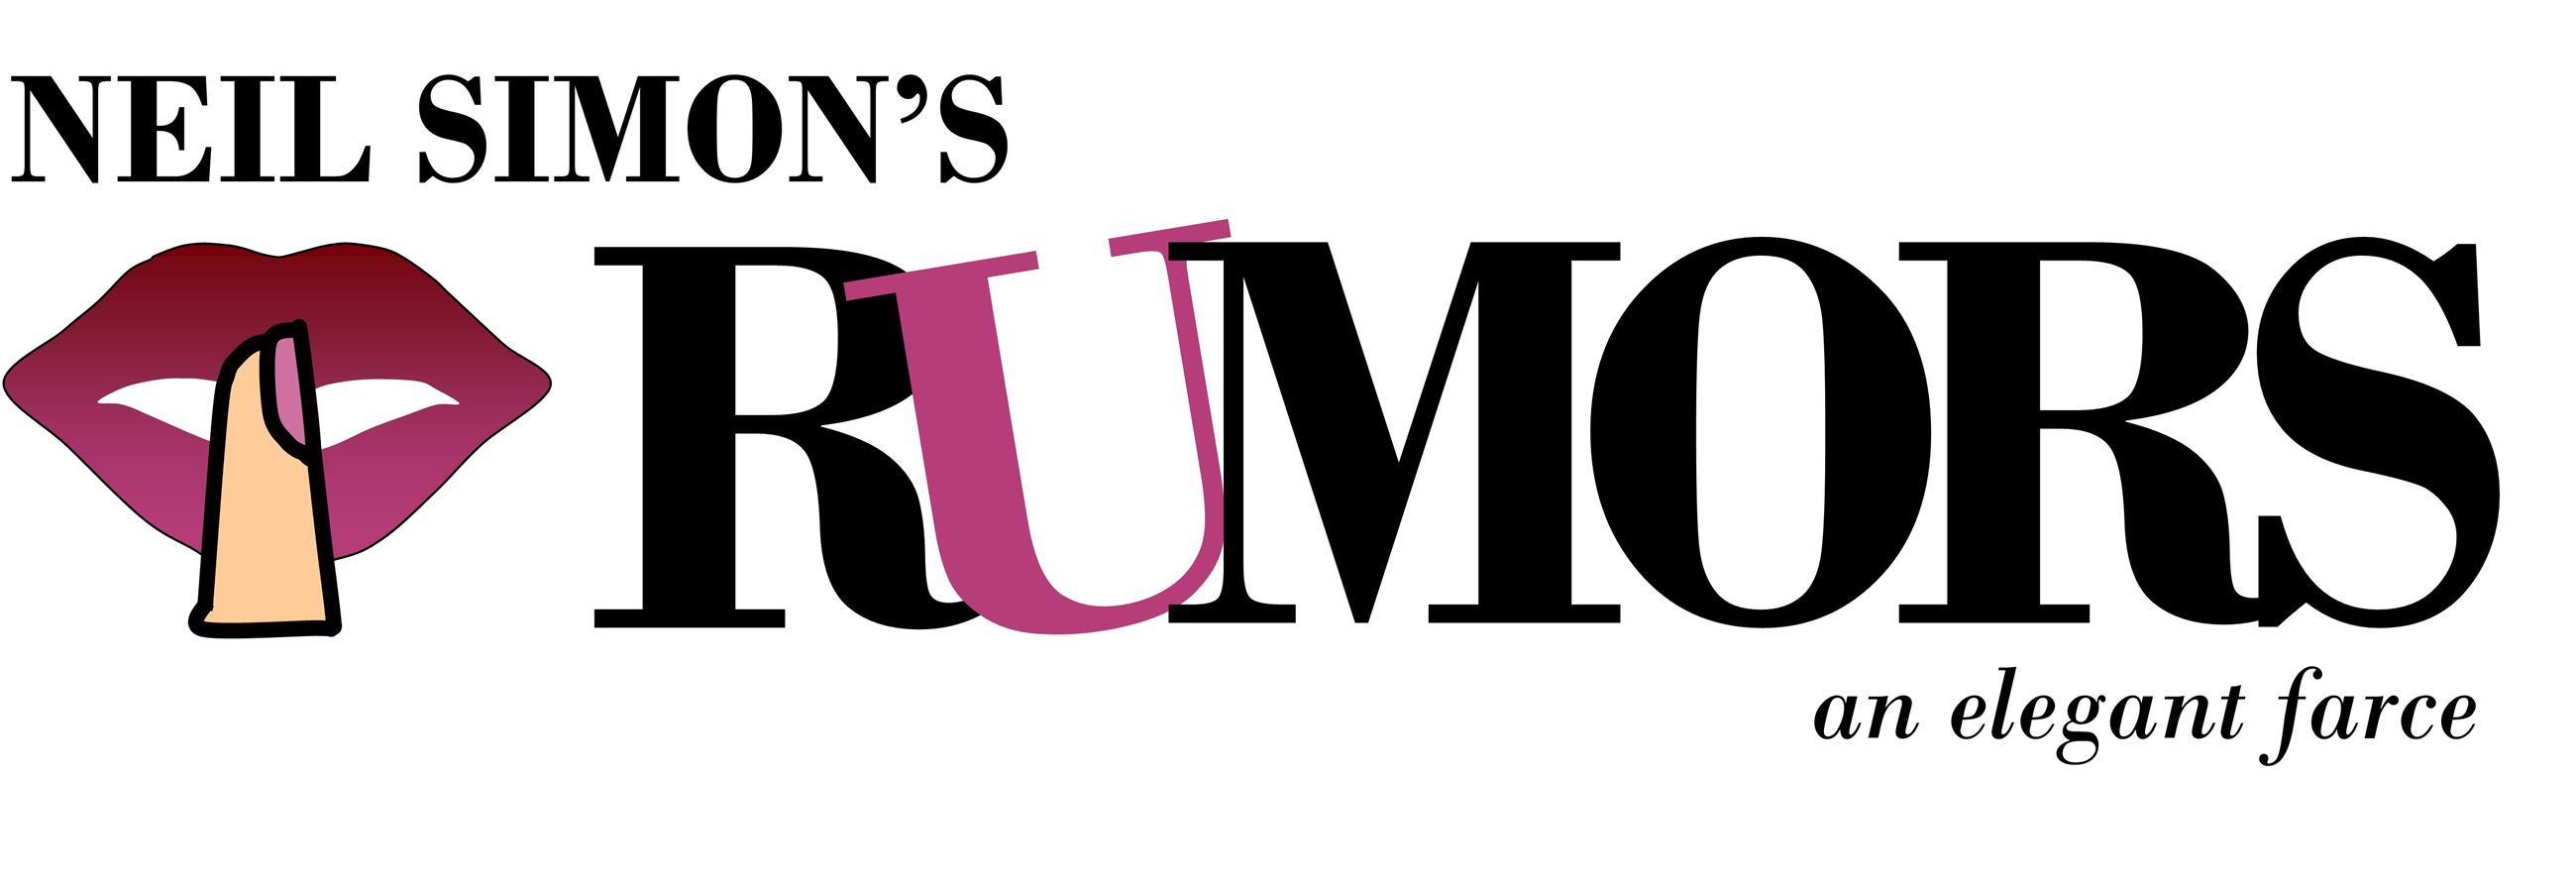 Rumors Logo [Halle]